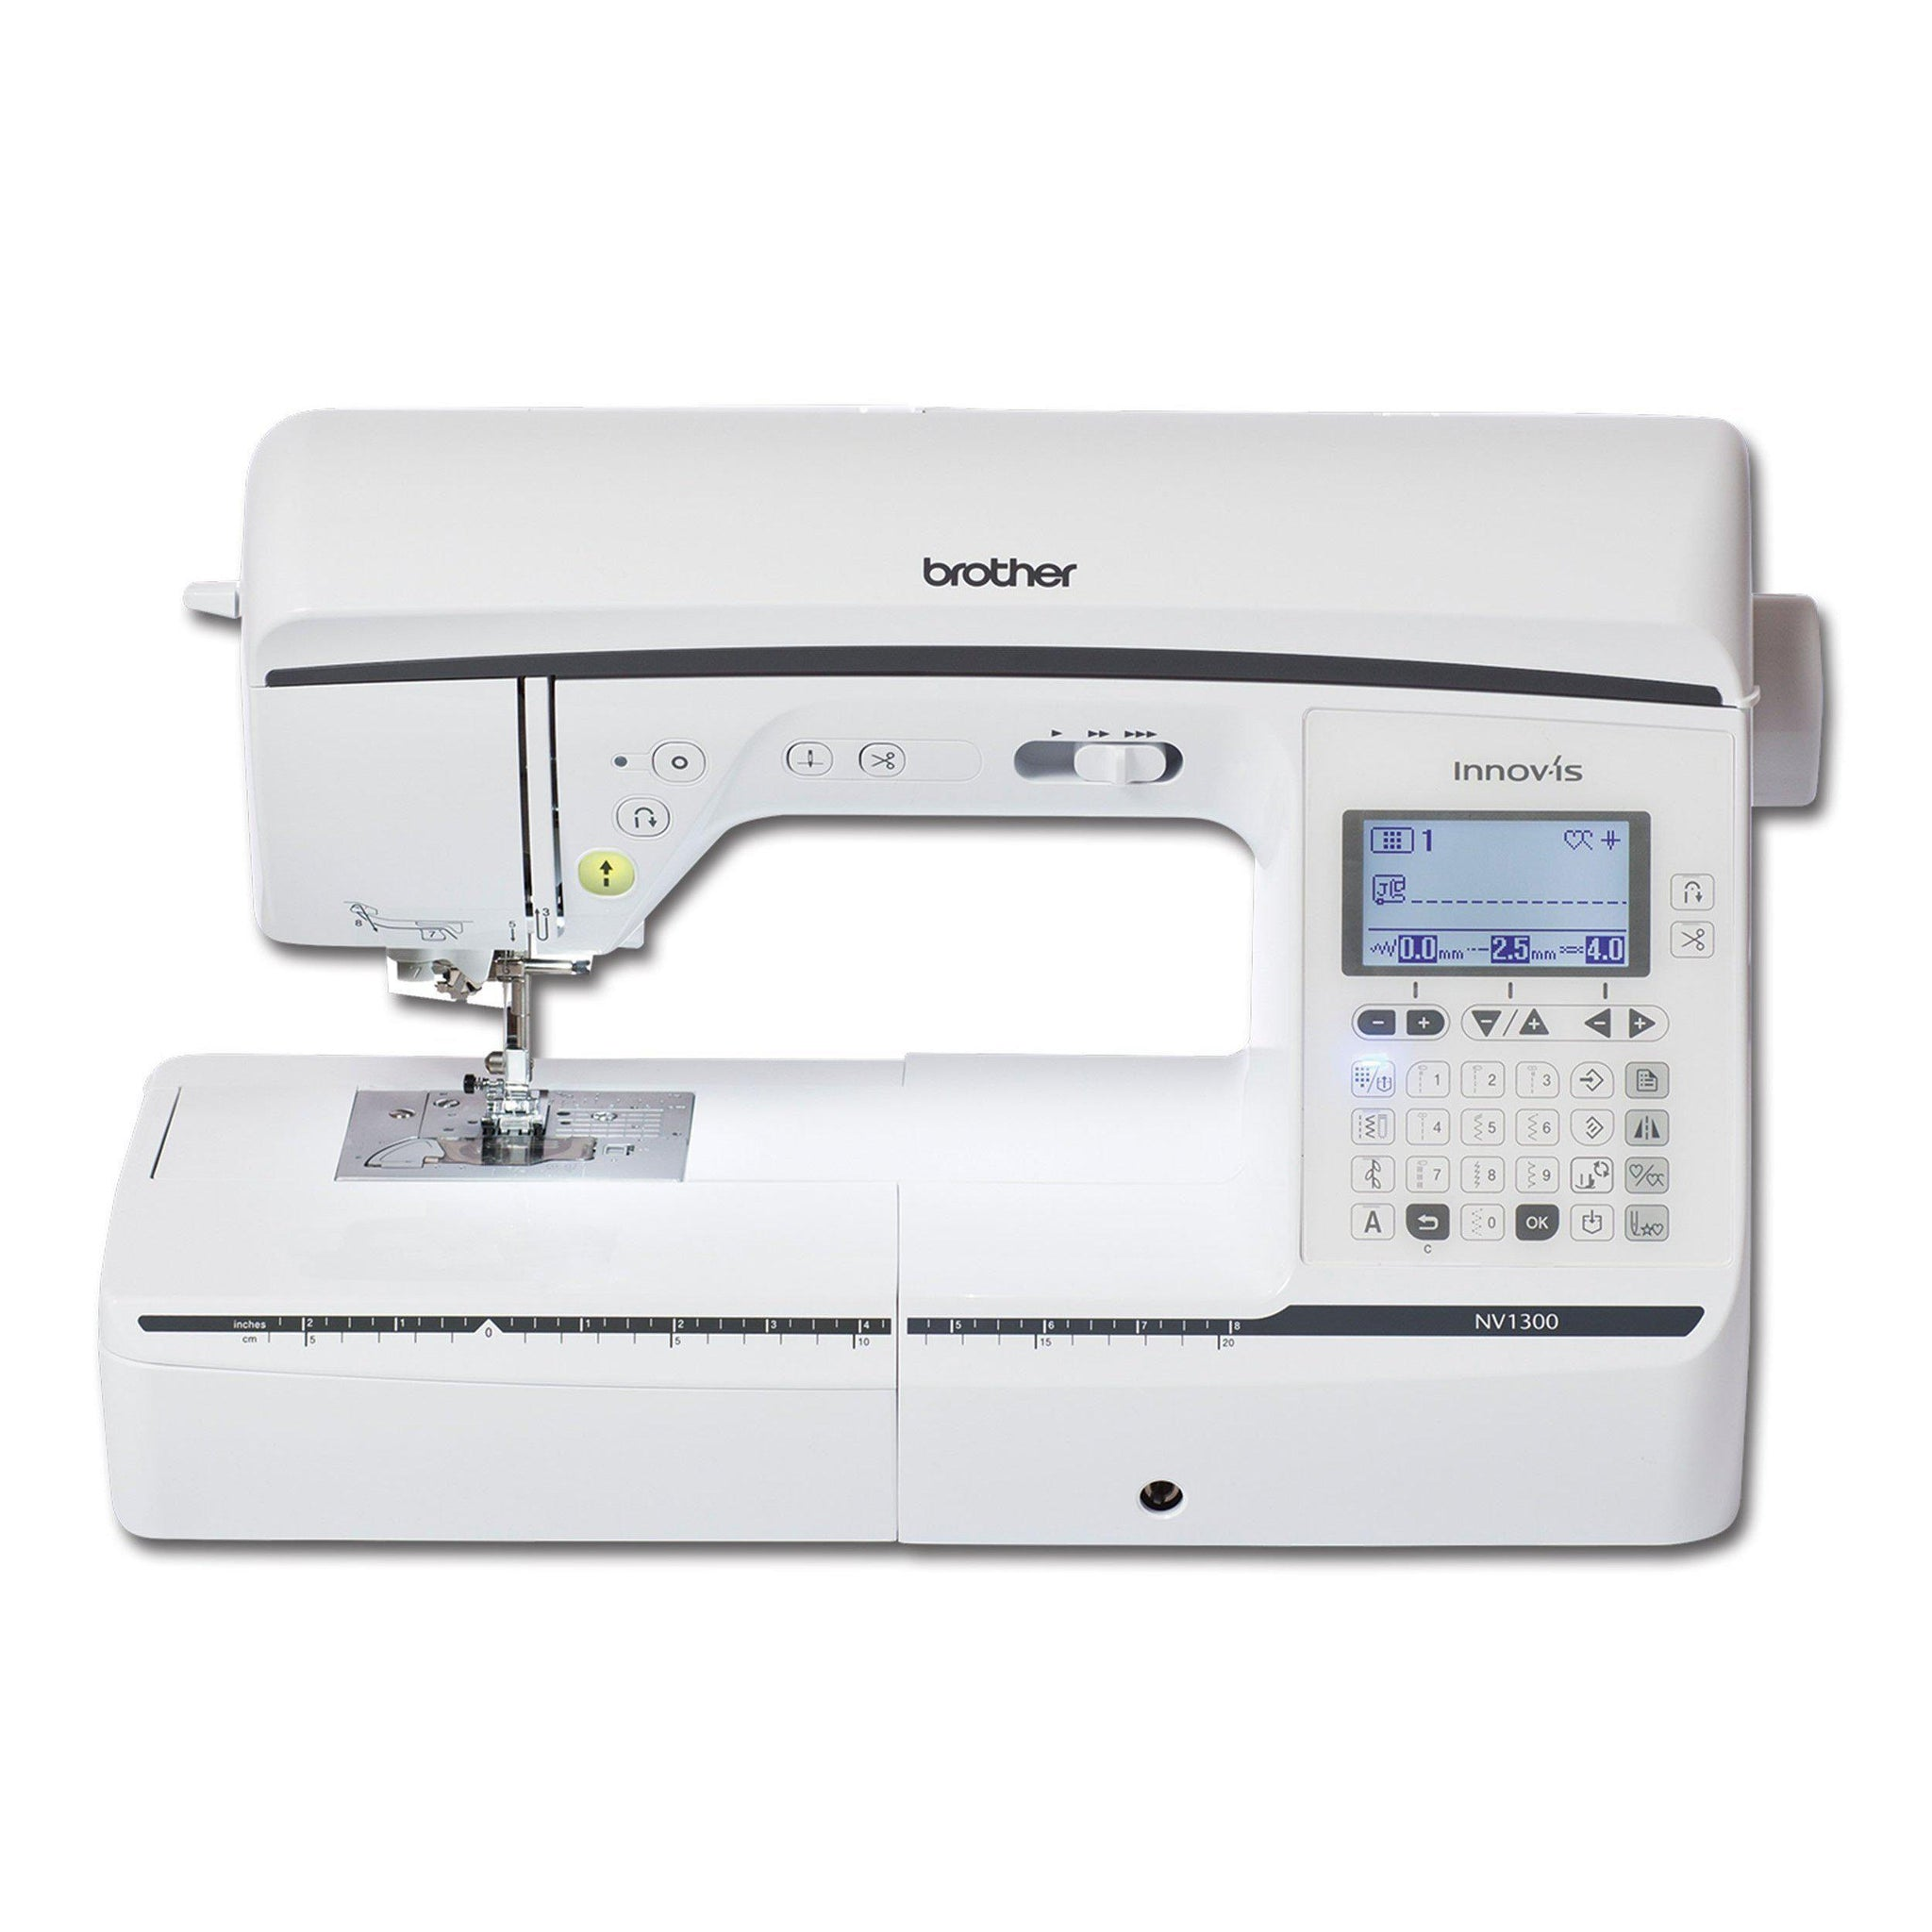 Brother Innovis NV1300 Brother Sewing Machines - Fabric Mouse